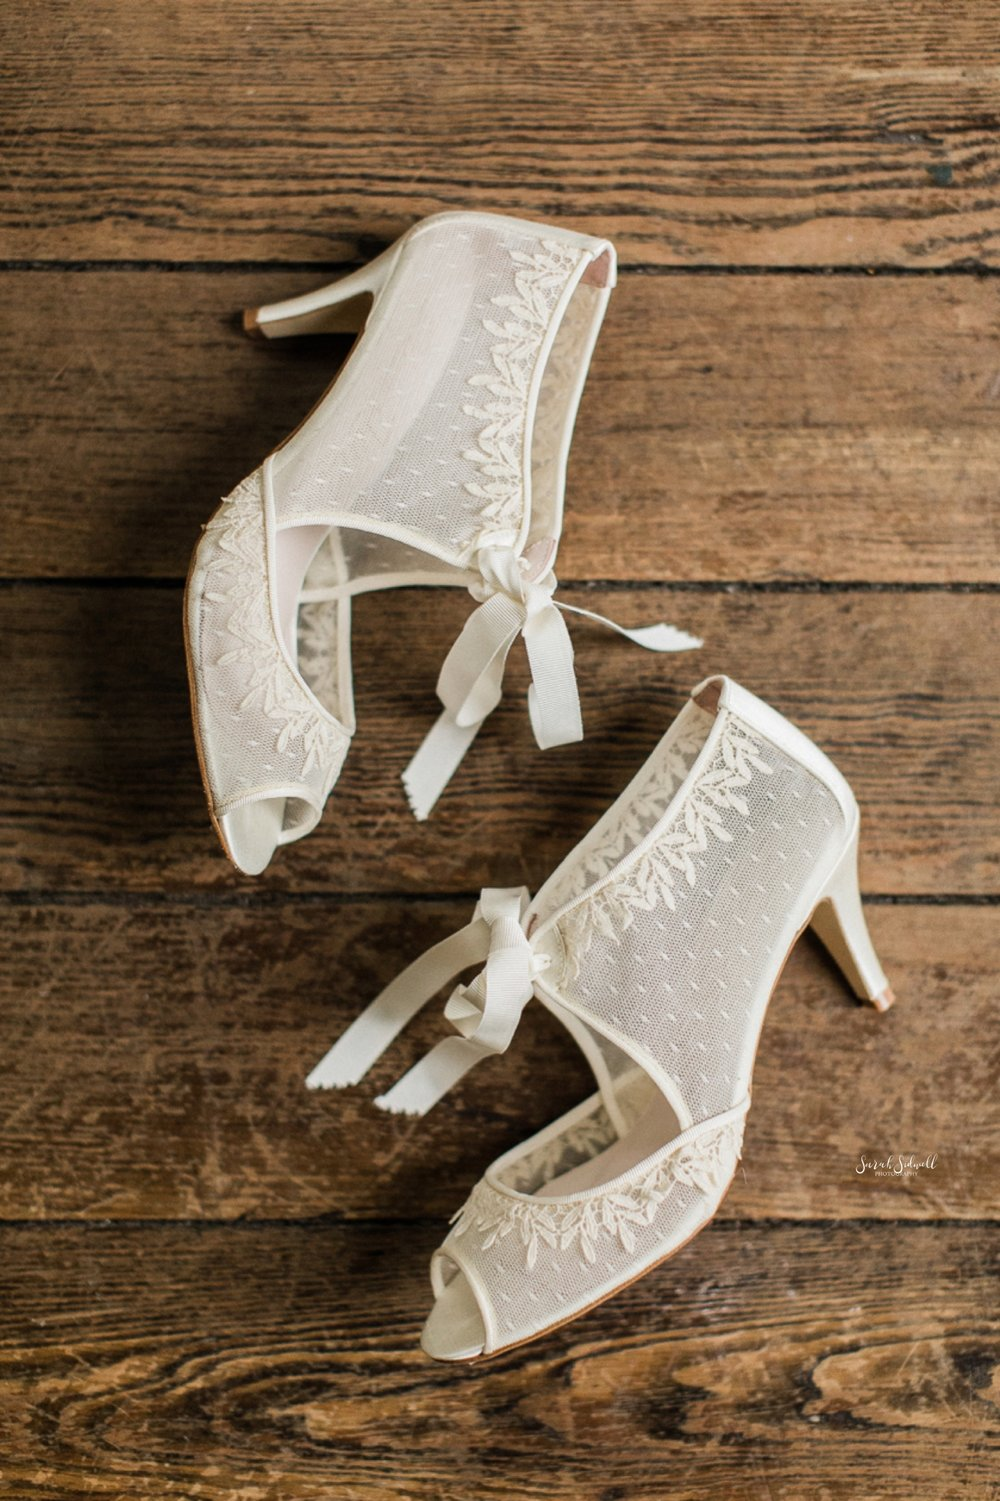 Bridal shoes lay on a wooden floor.